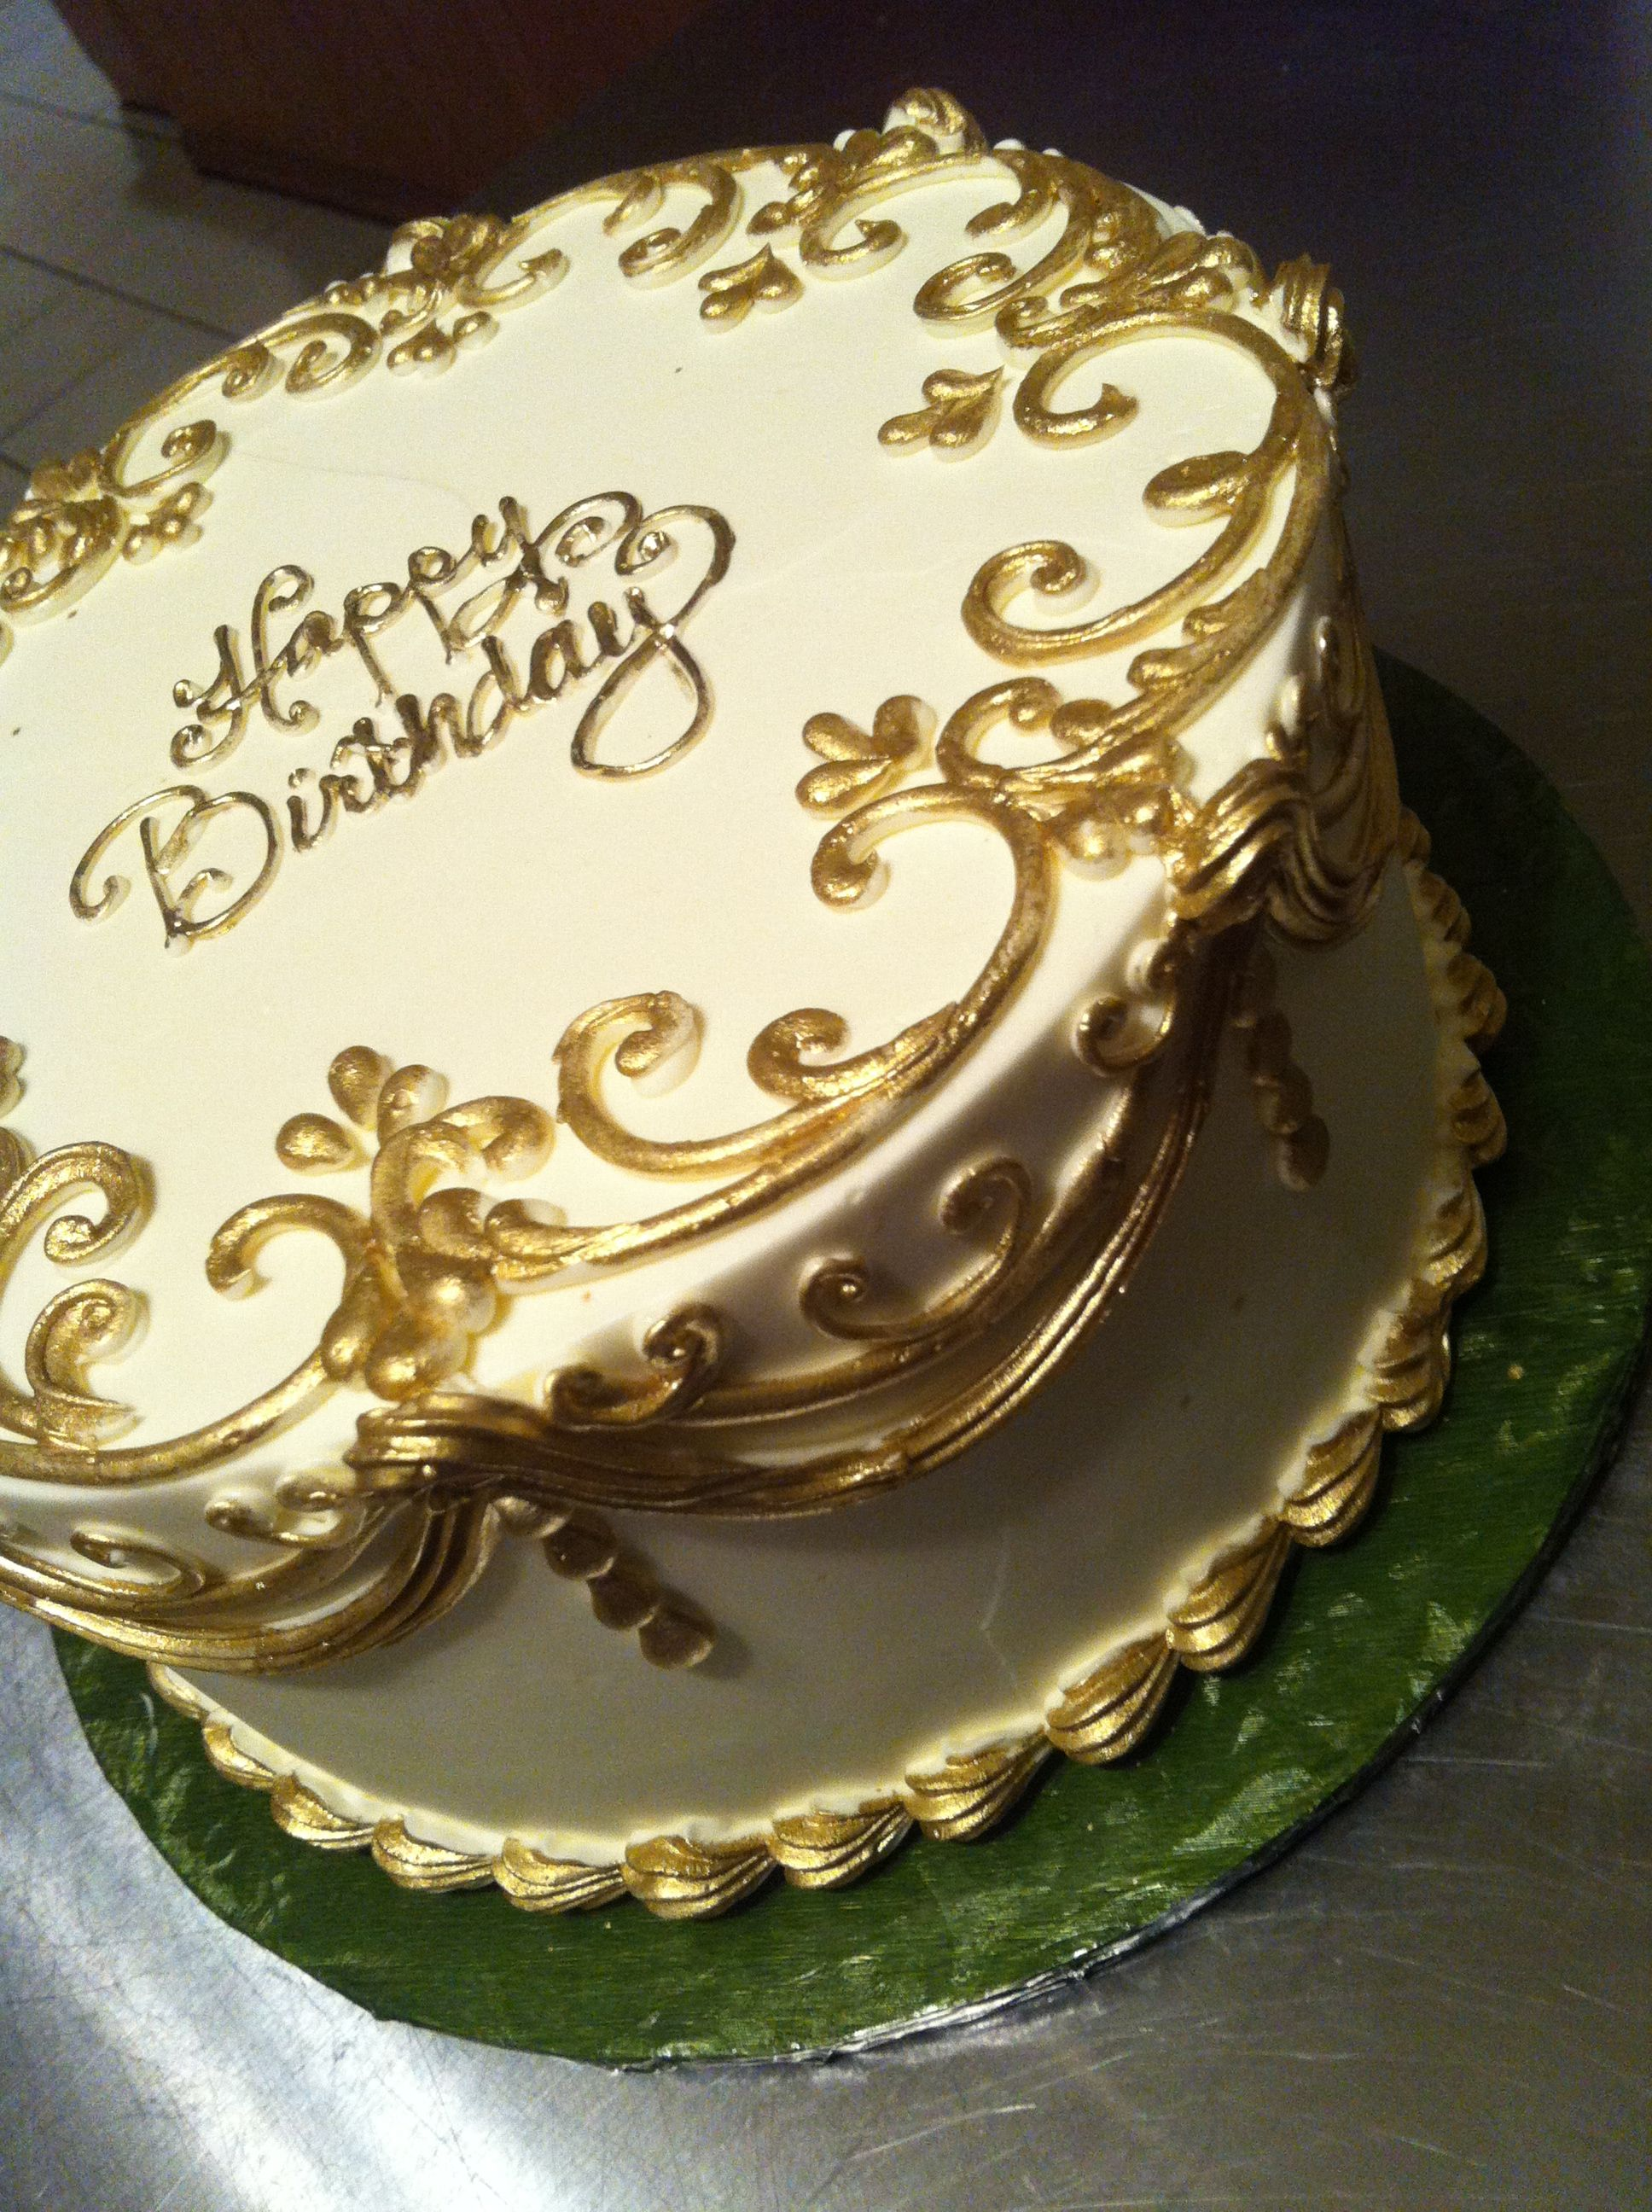 Golden Birthday Cake Maybe A Square Cake With Same Edging And A